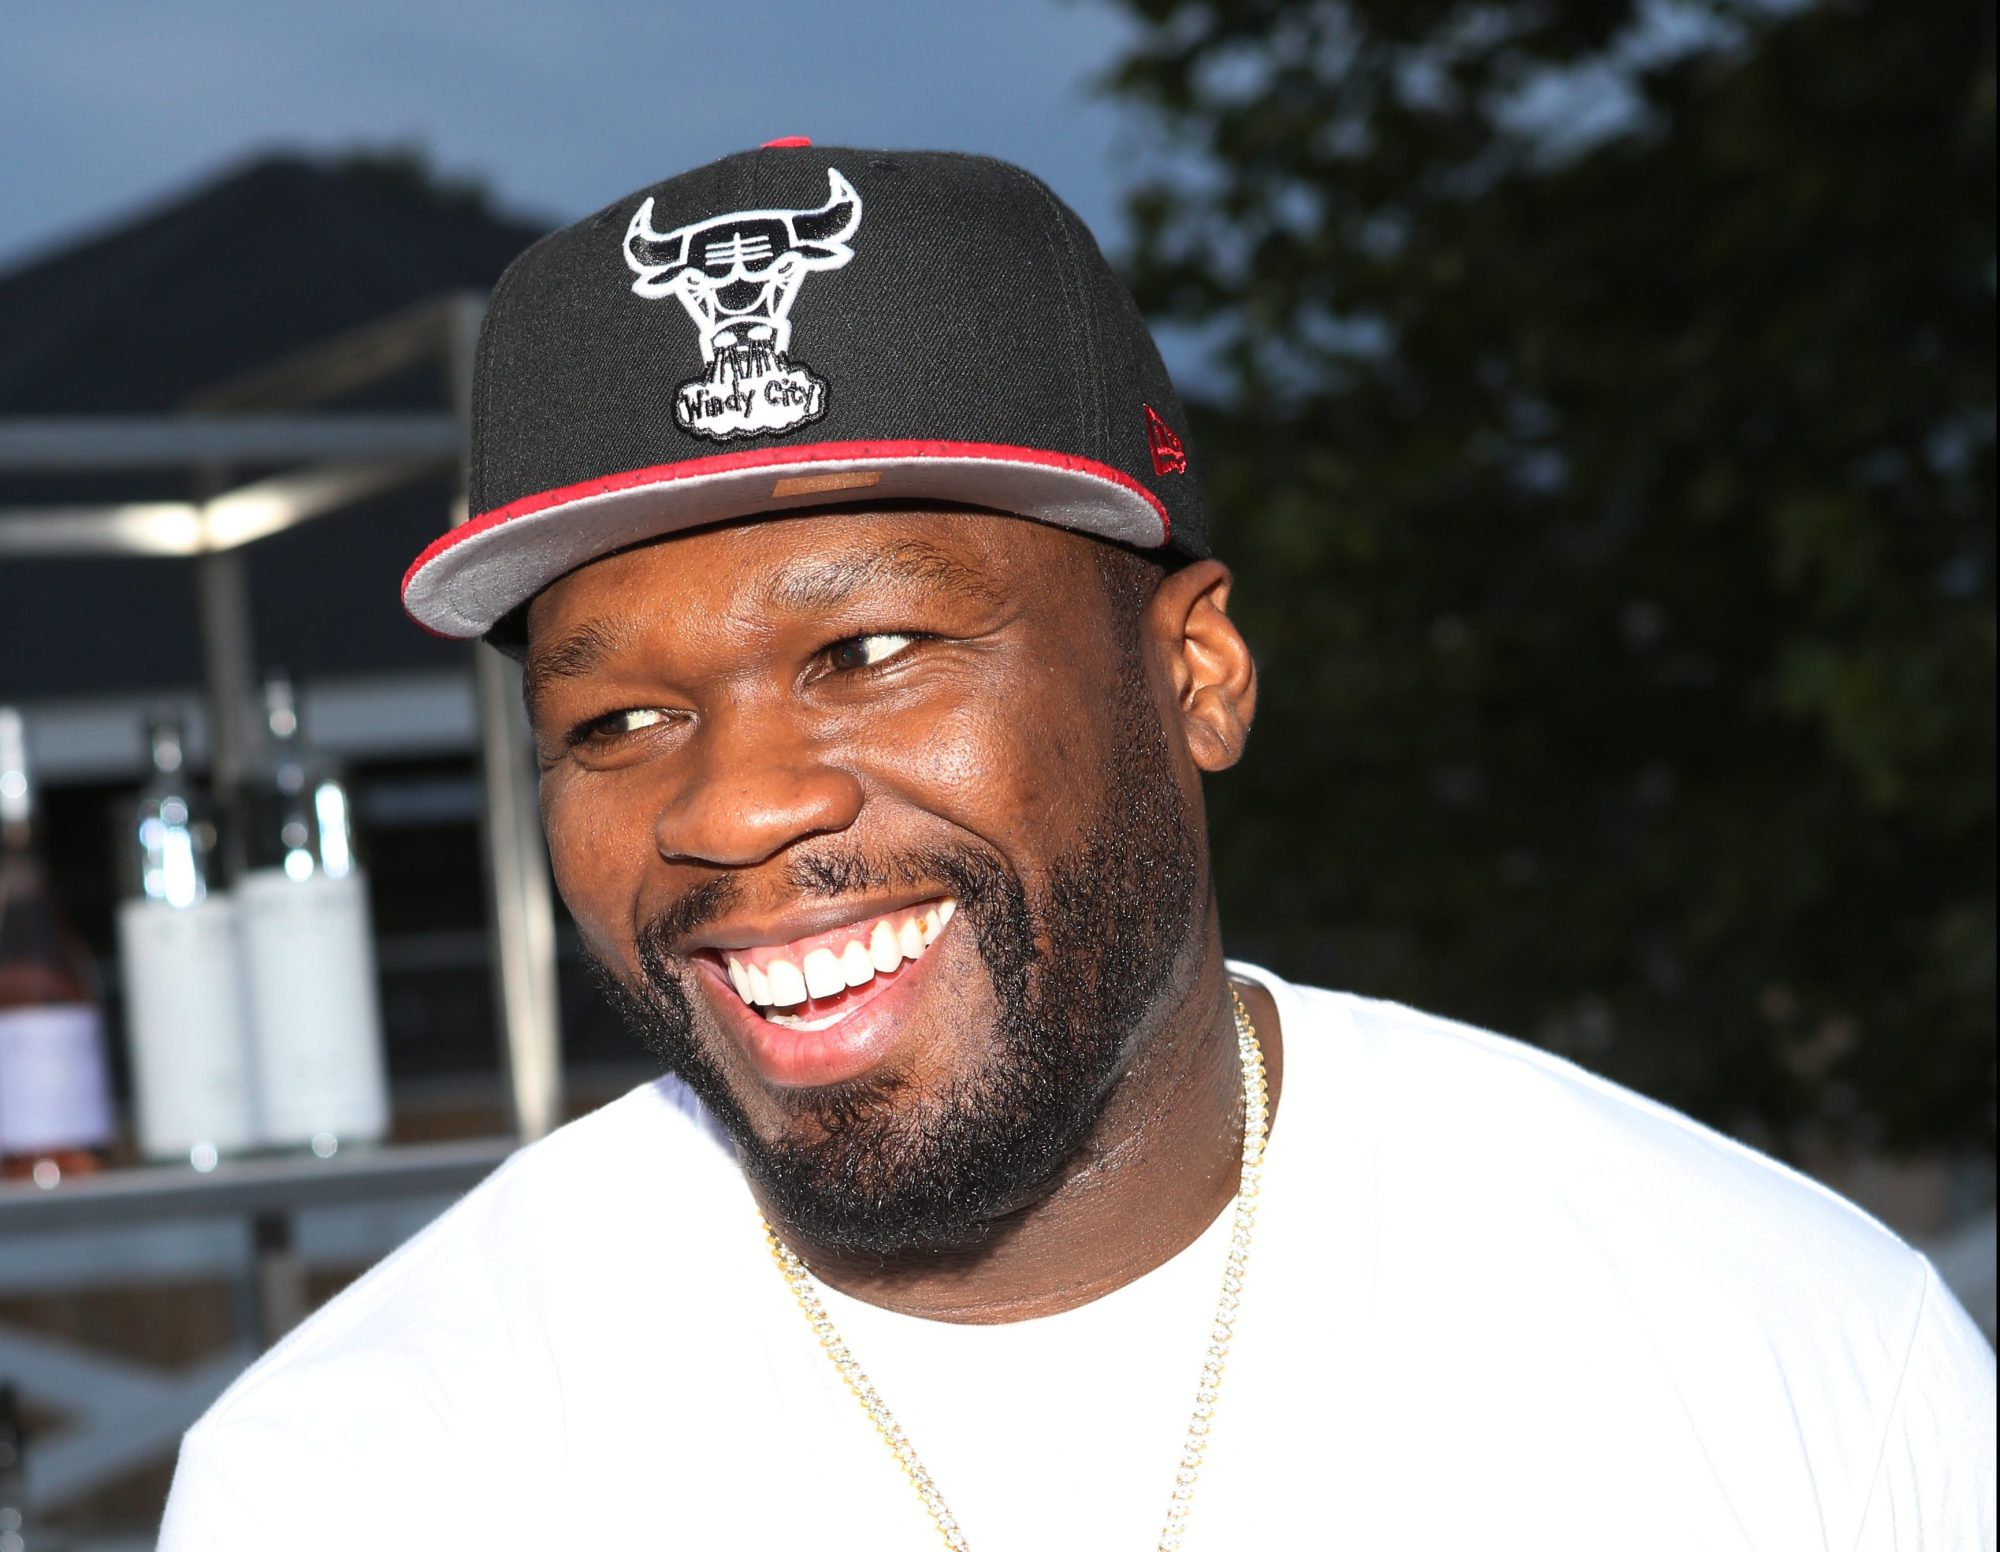 50 Cent's Shade Game Is Still Strong: He Trolls His Baby Mama For Getting Her 'Body Done' And Makes Fun Of Madonna's New Booty